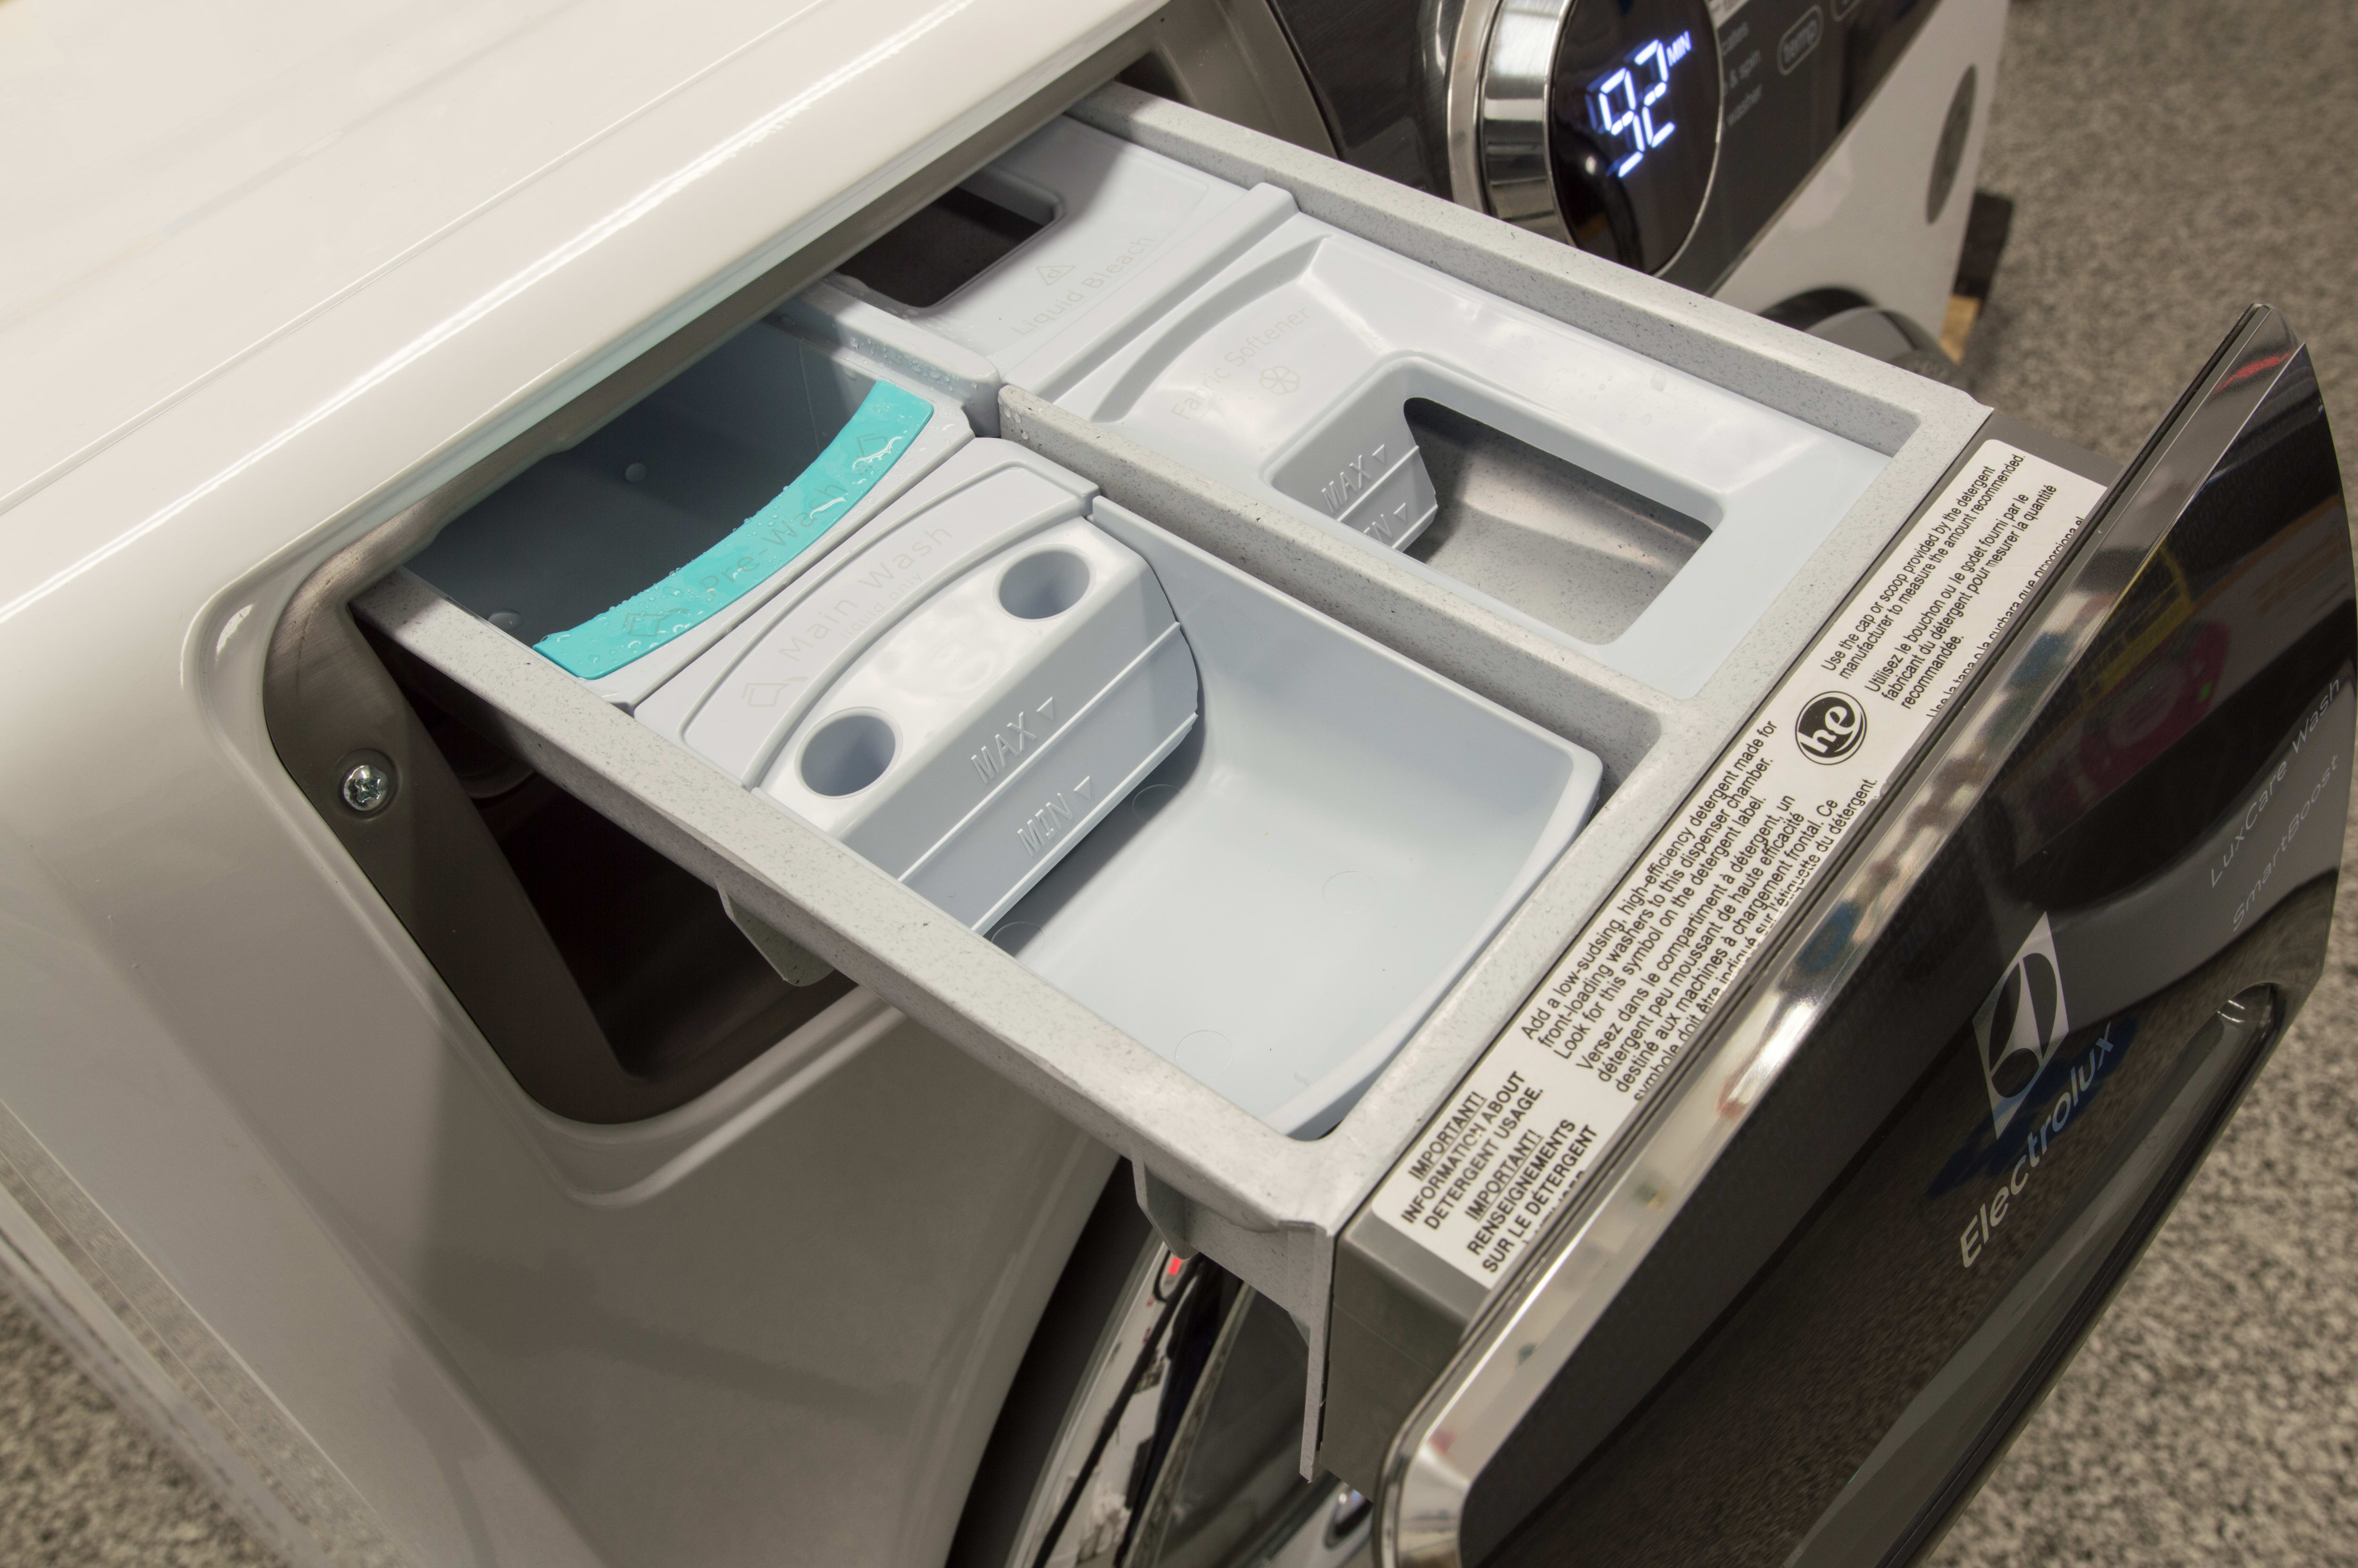 A standard dispensers that you'll find on other washers. Be sure to remove the tray if you want to use powdered detergent.